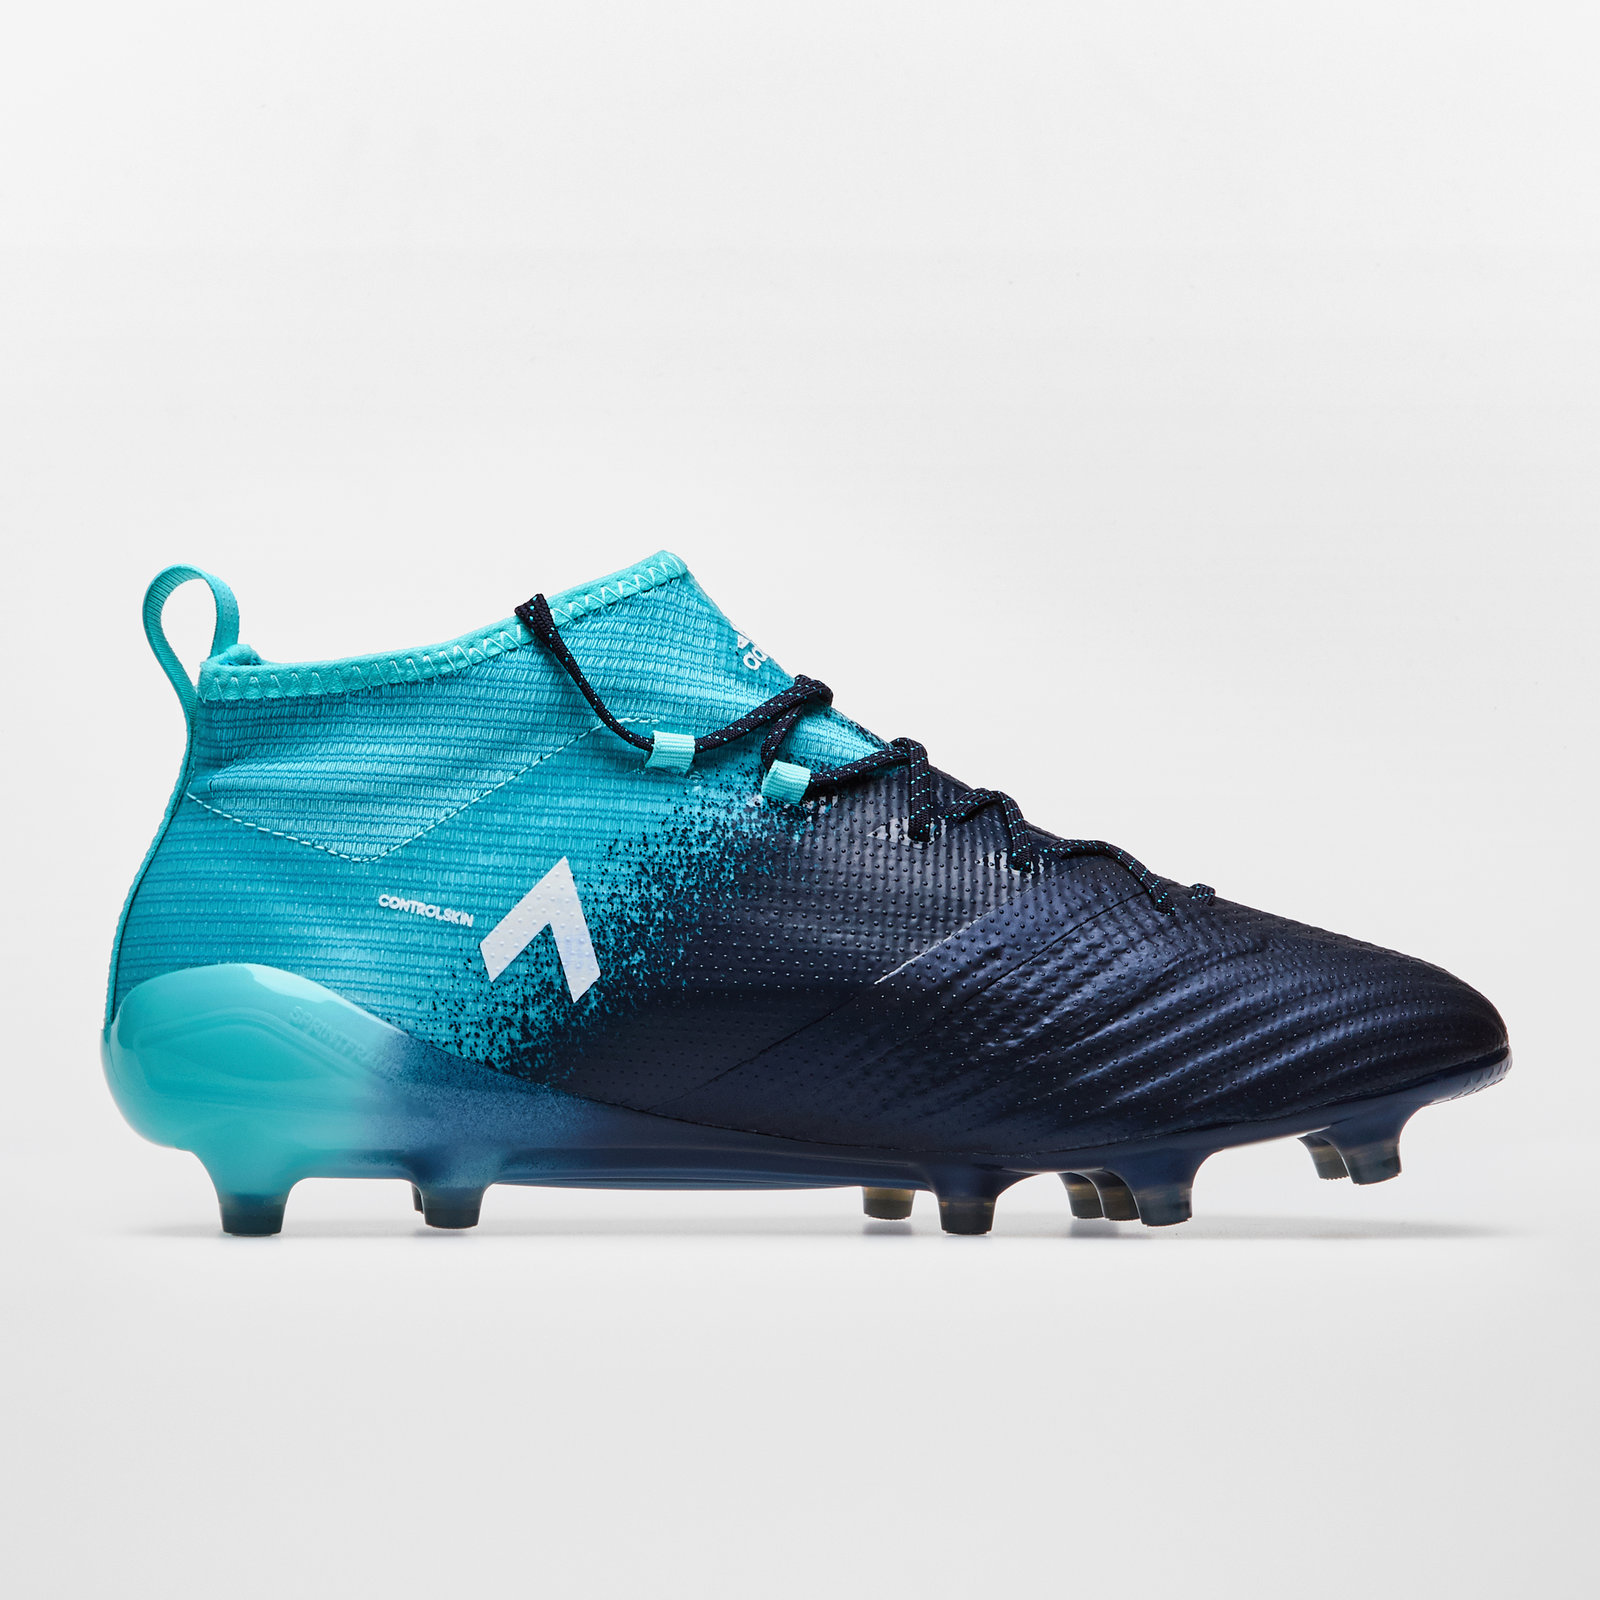 cheap for discount 74d19 76ece adidas Mens Ace 17.1 FG Football Boots Shoes Footwear Sports Training